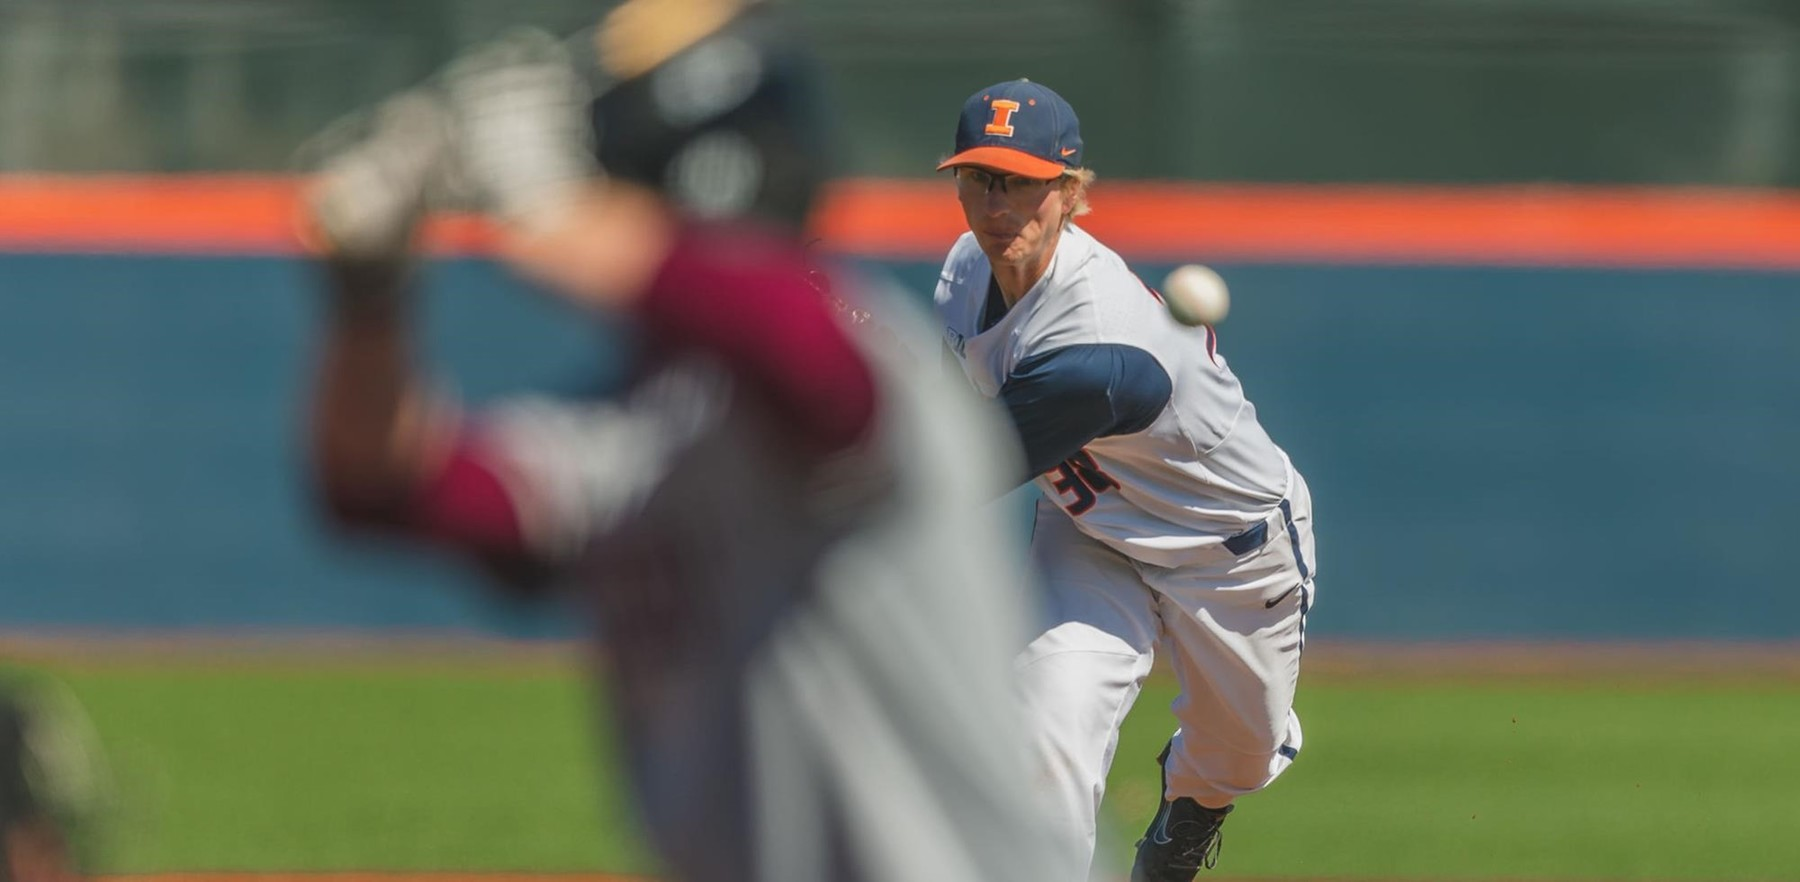 Left-handed Illini pitcher Andy Fisher will get the start Friday at 4 pm